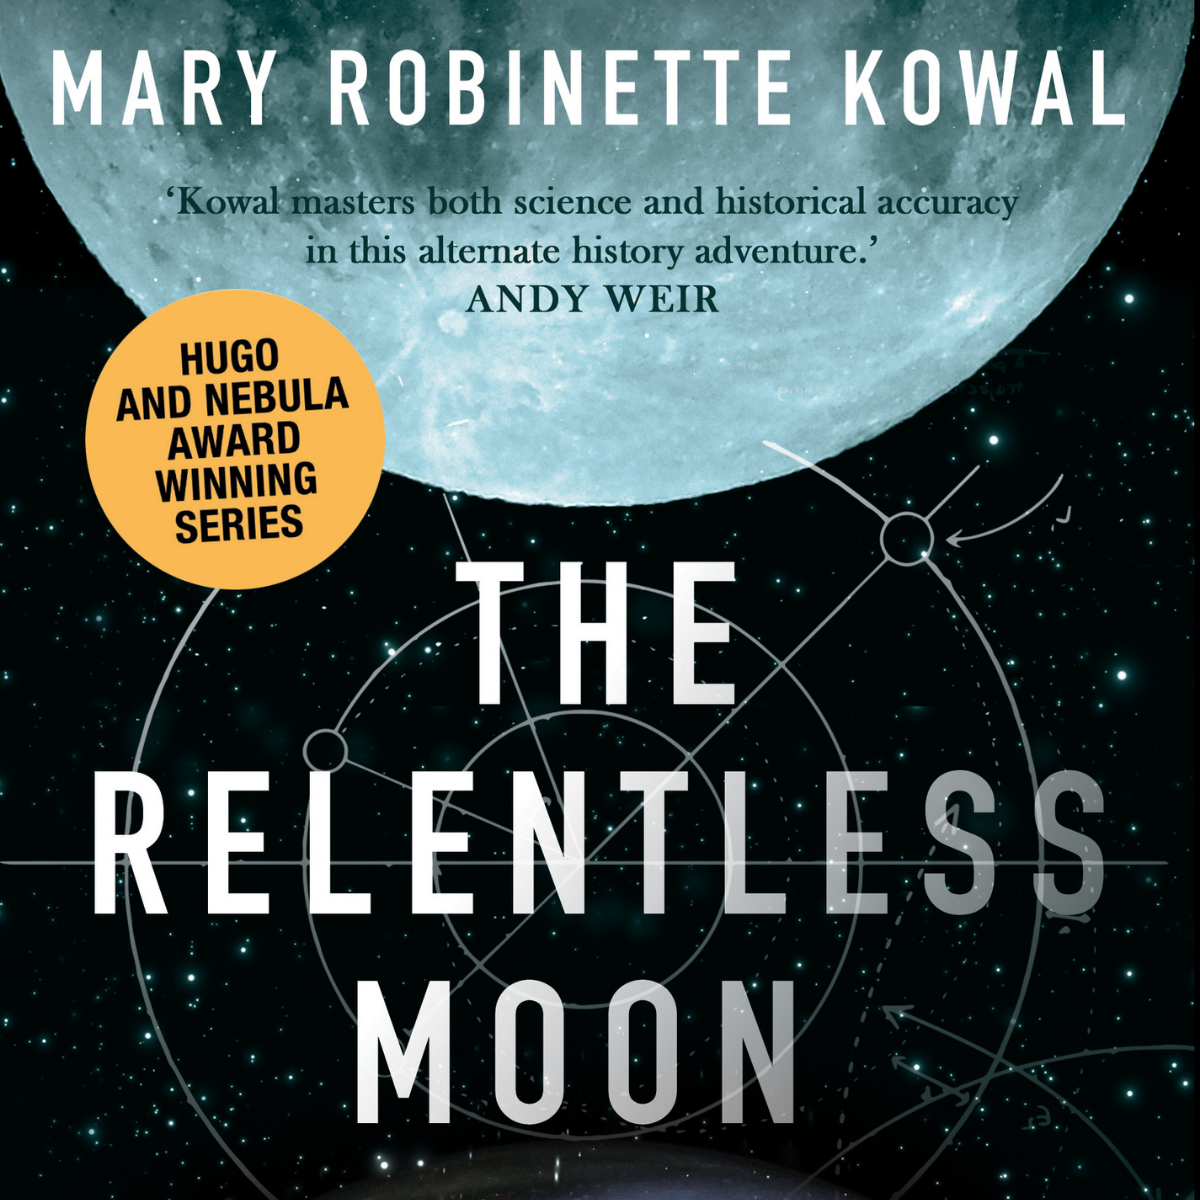 OUT NOW: The Relentless Moon by Mary Robinette Kowal (UK)